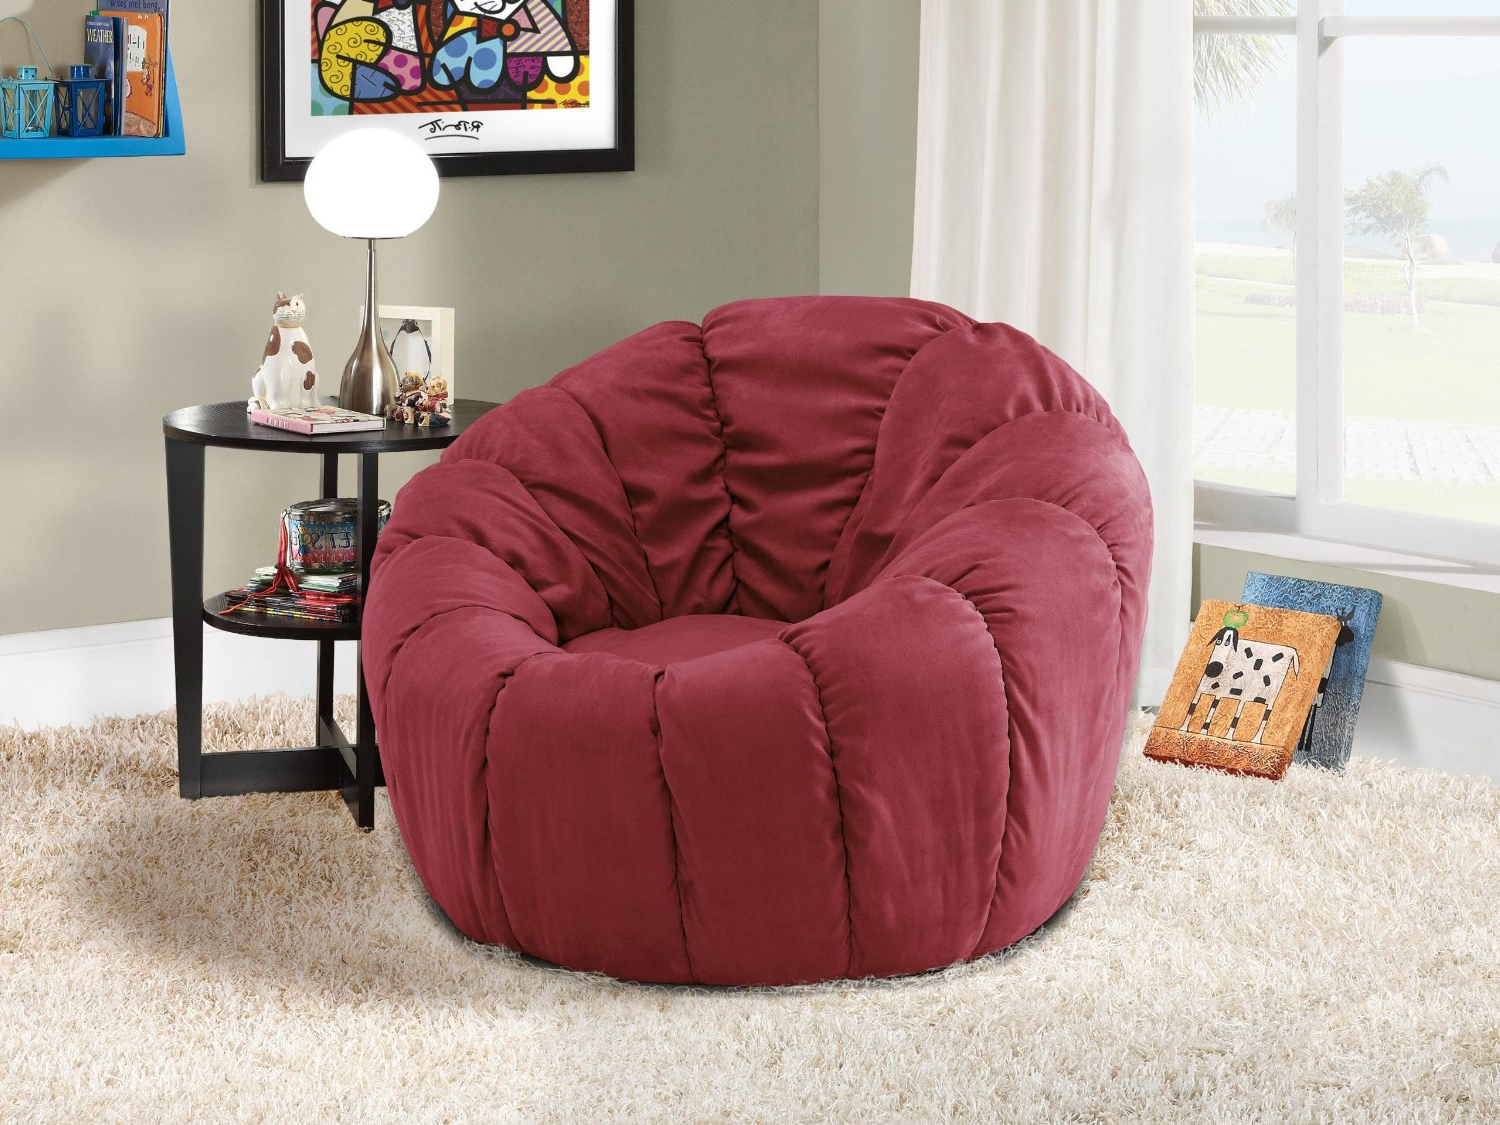 Preferred Living Room : Round Sofa Chair Sofa Round Chair Curved Sofas For Within Round Sofa Chair Living Room Furniture (View 11 of 20)